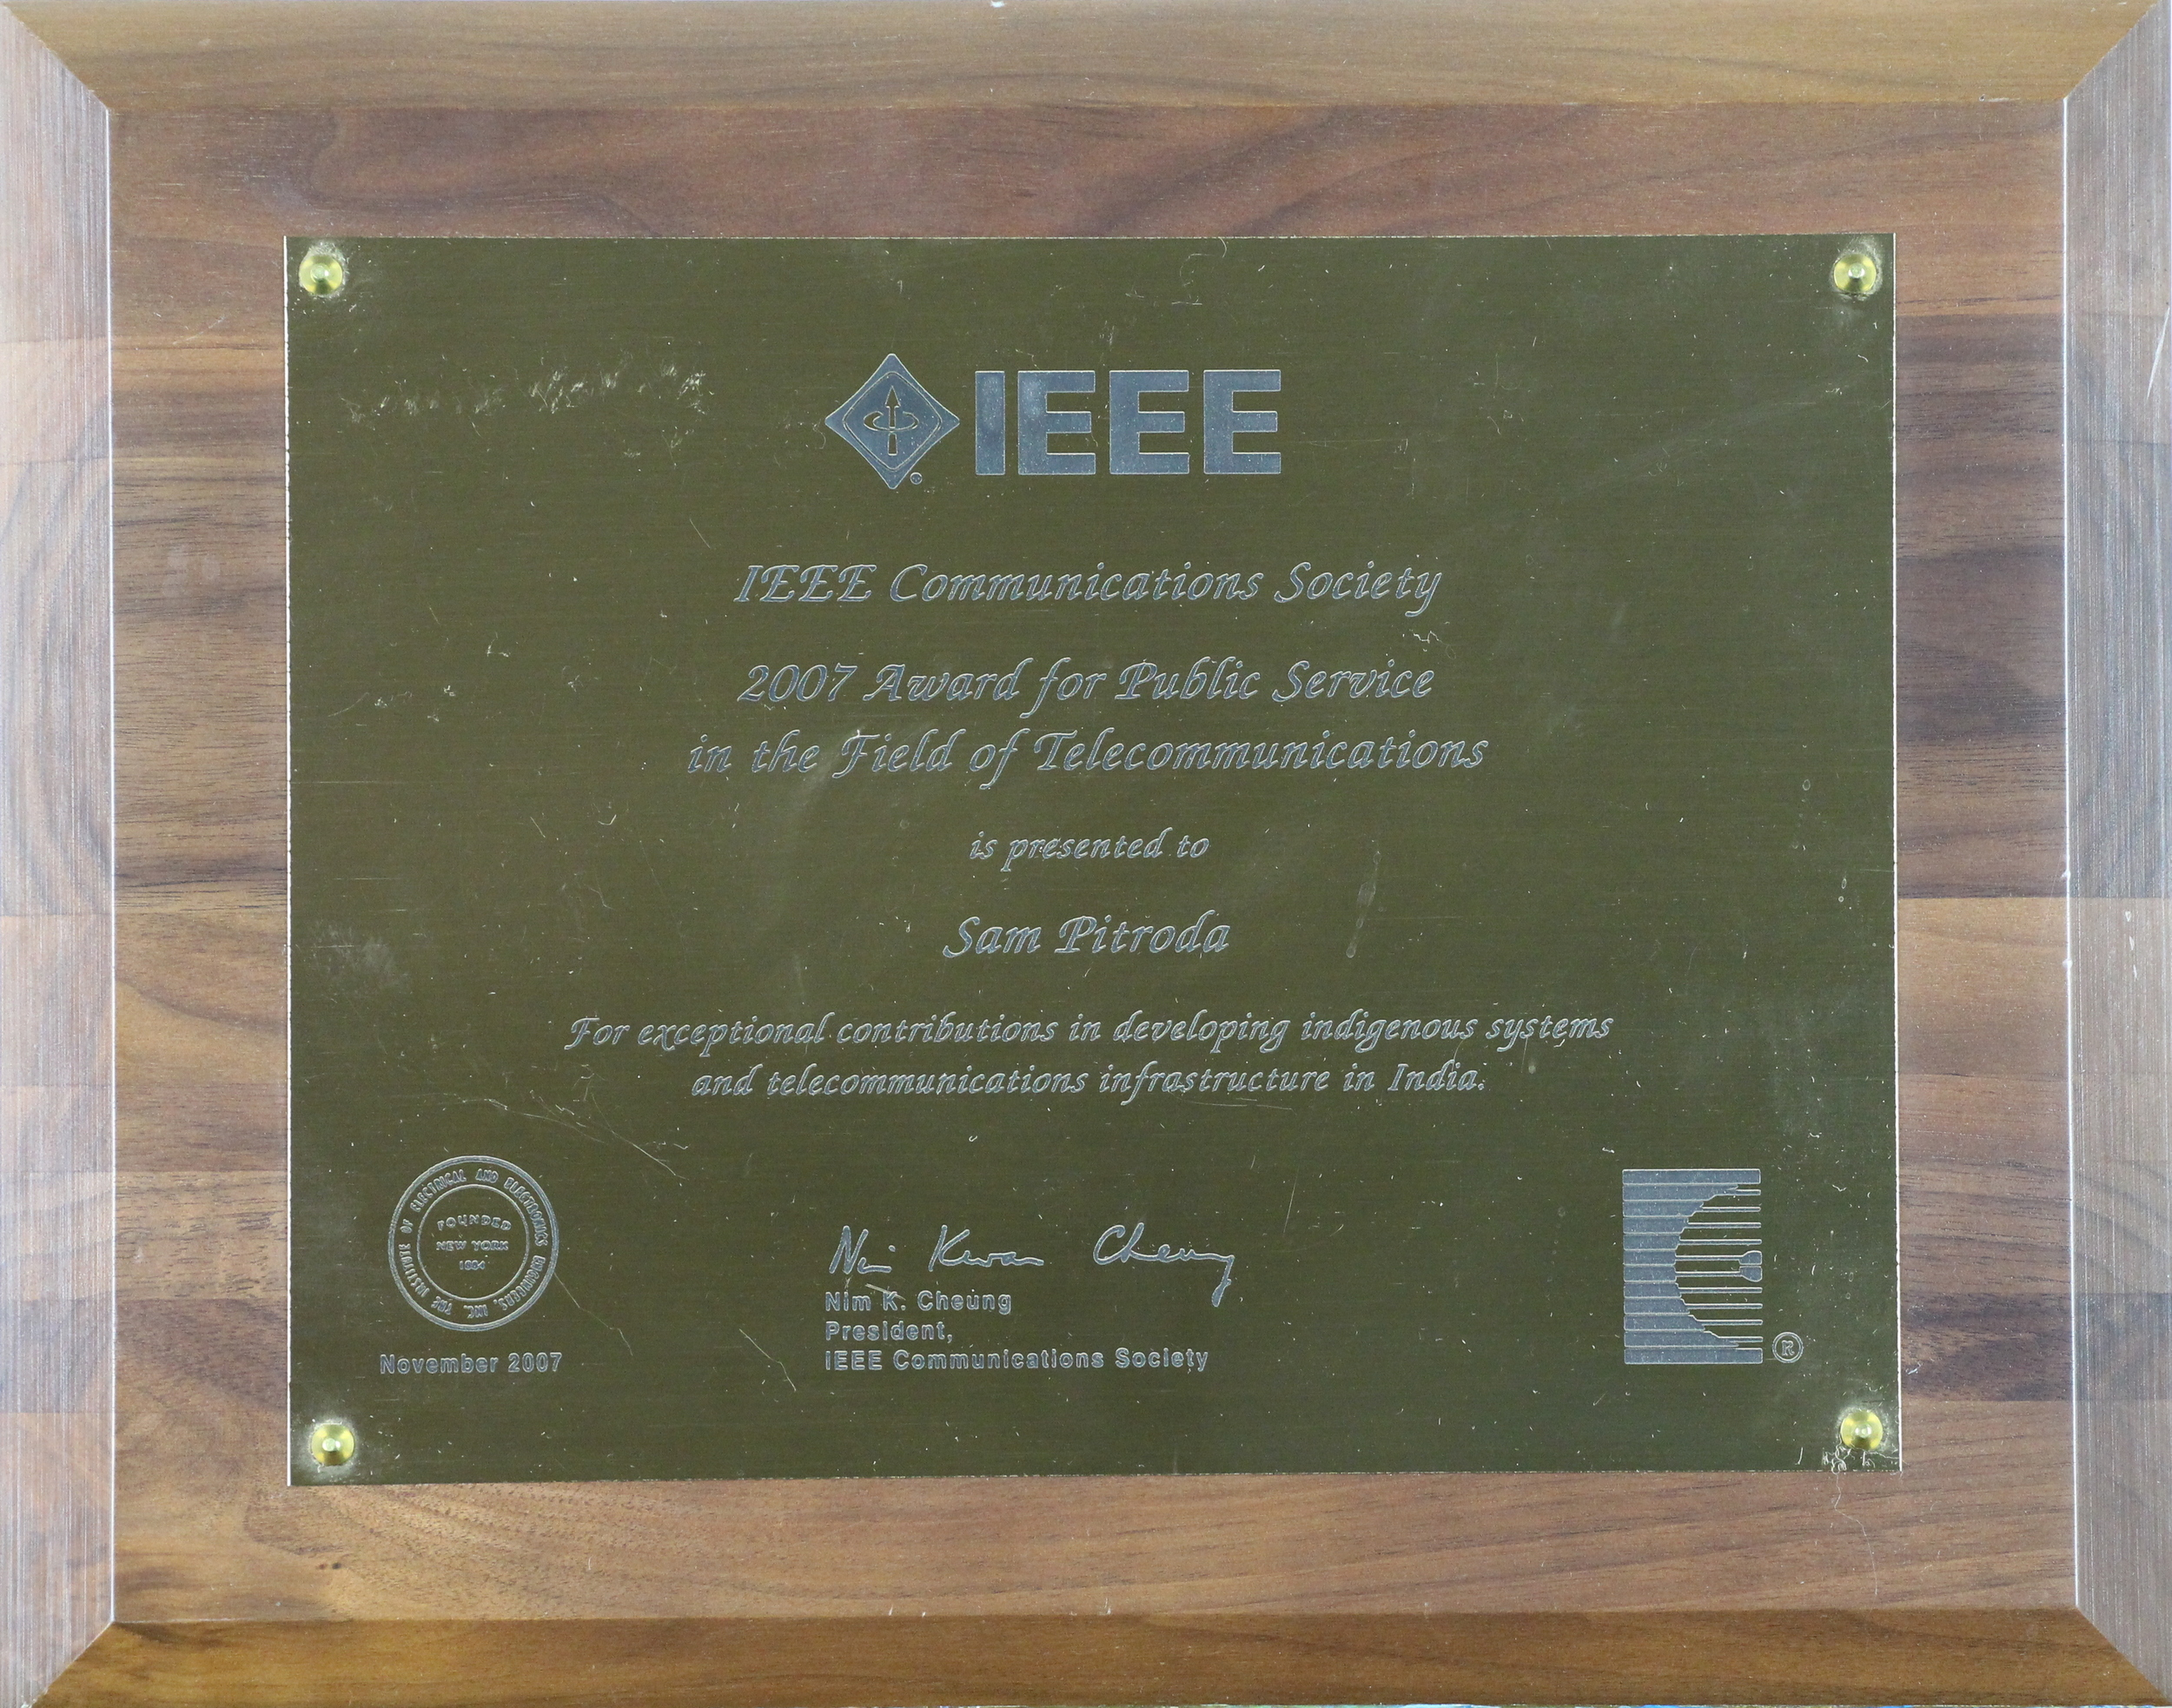 Award for Public Services in the Field of Telecommunications, IEEE Communications Society, 2007